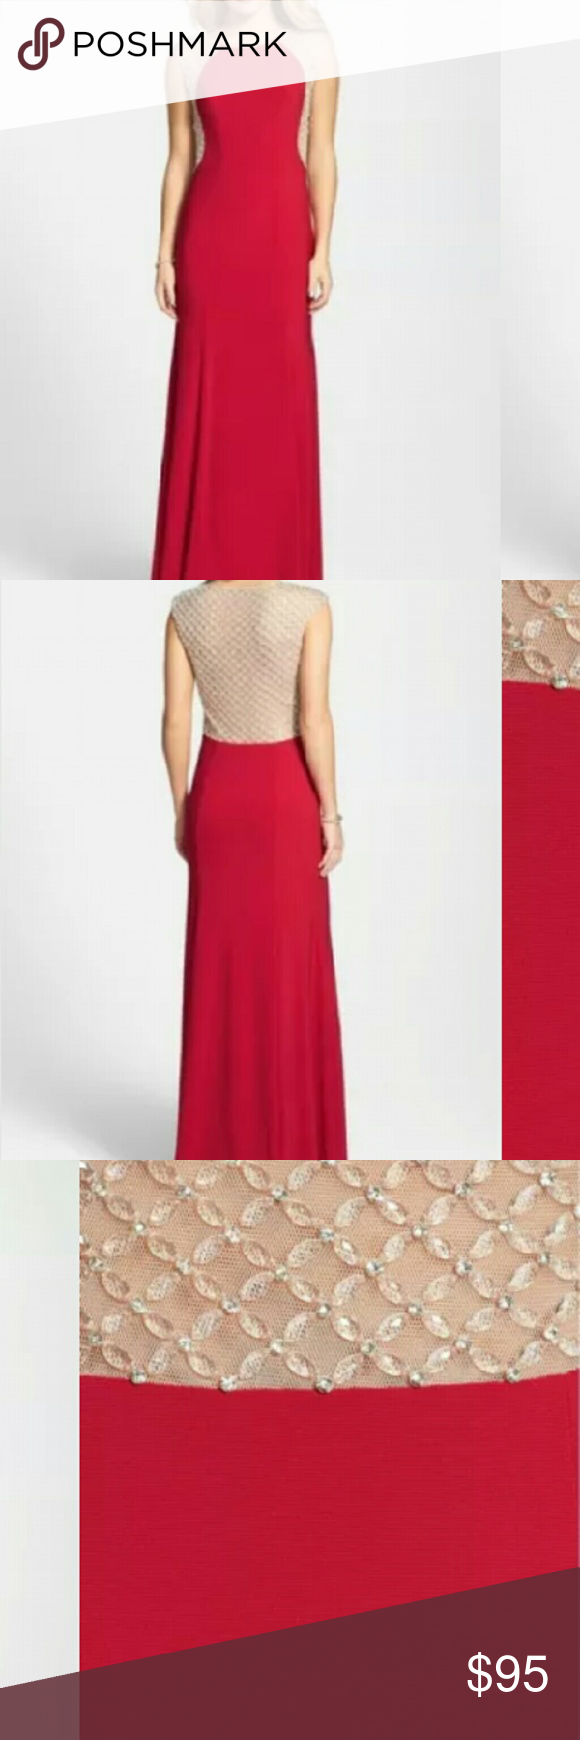 Xscape Beaded Full Length Prom Dress New with tags, beaded, full length Xscape Dresses Prom